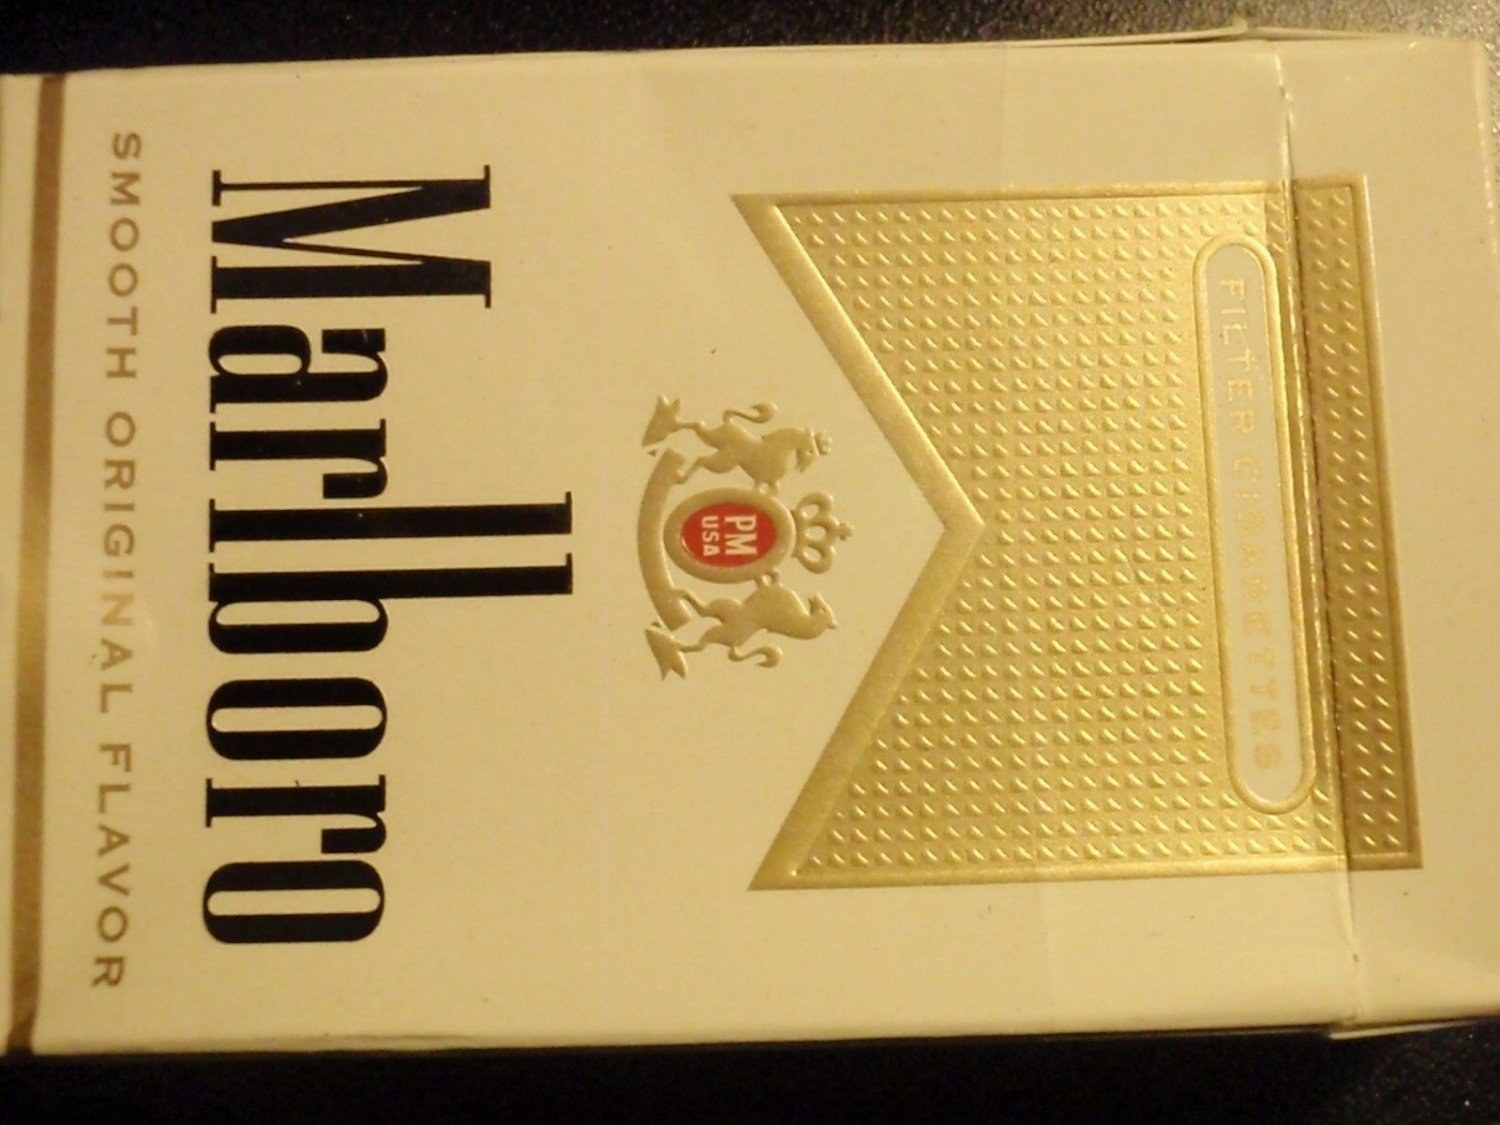 EMPTY CIGARETTE BOX EMPTY PACK USA MARLBORO Gold VA NVCTB tax label stamp